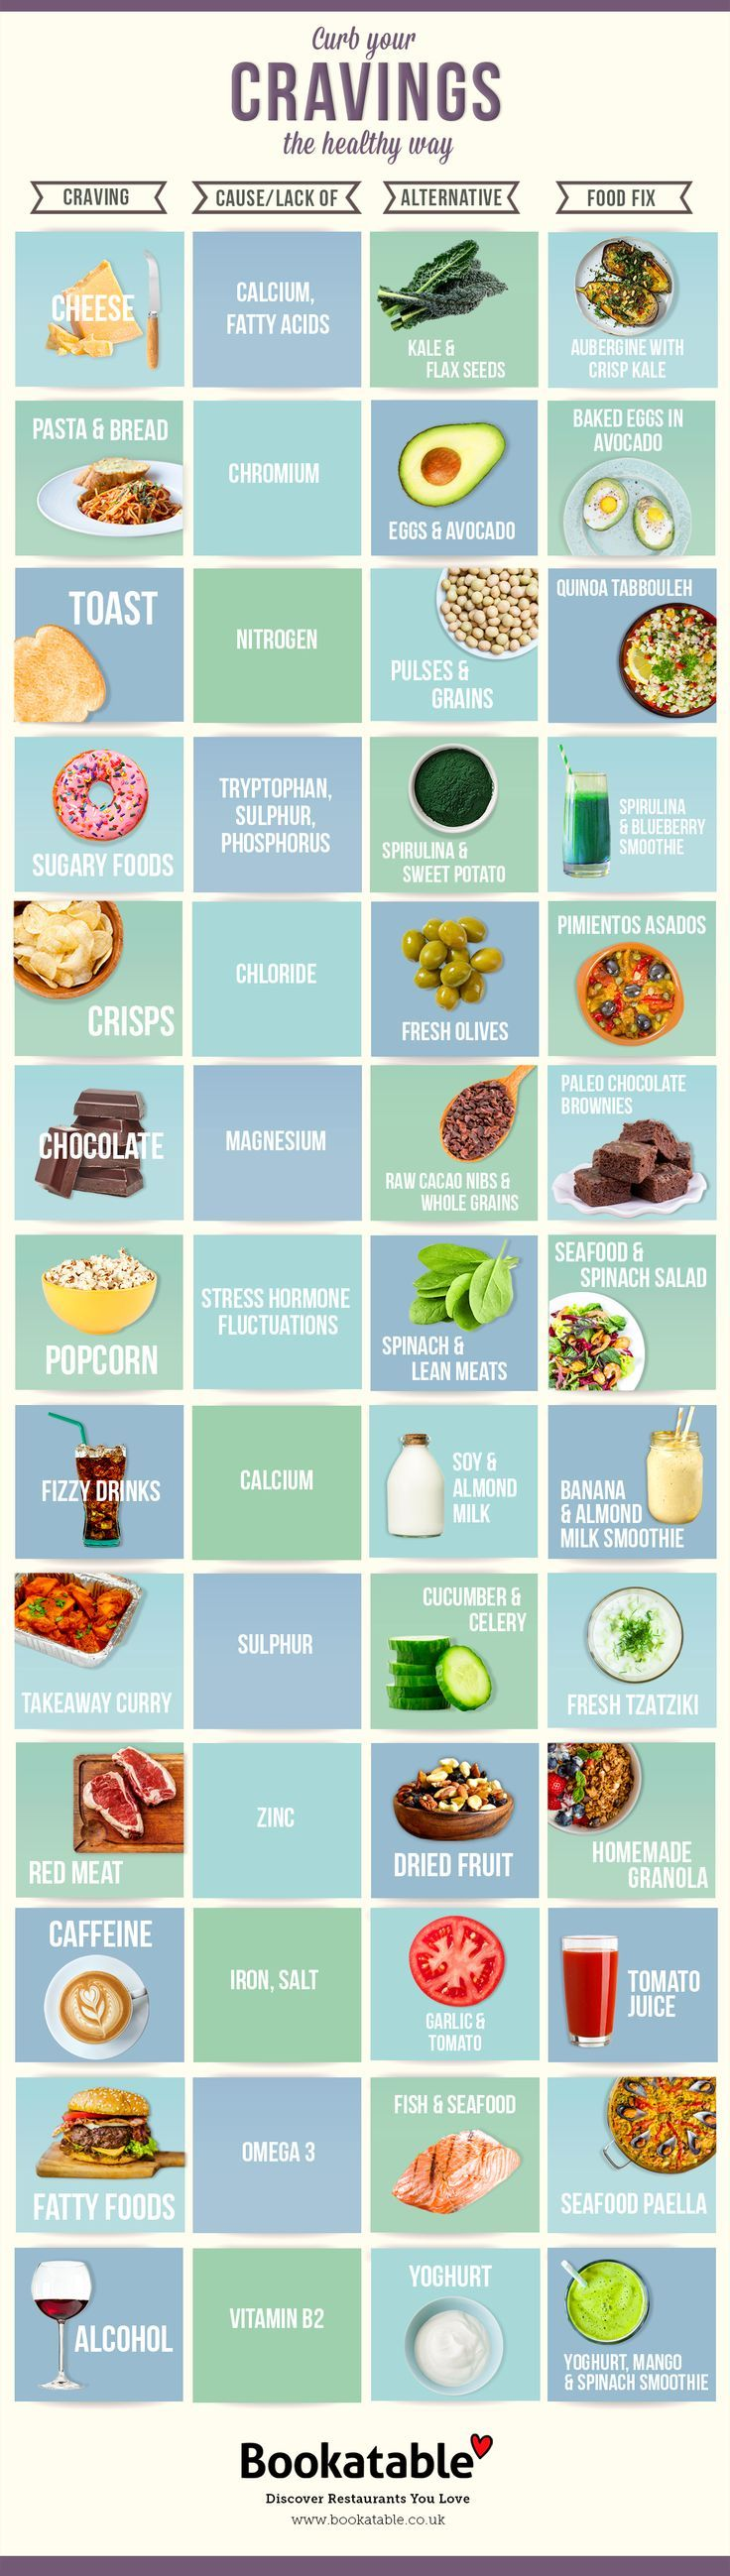 Infographic Weight Loss: Curb Your Cravings the Healthy Way #Infographic